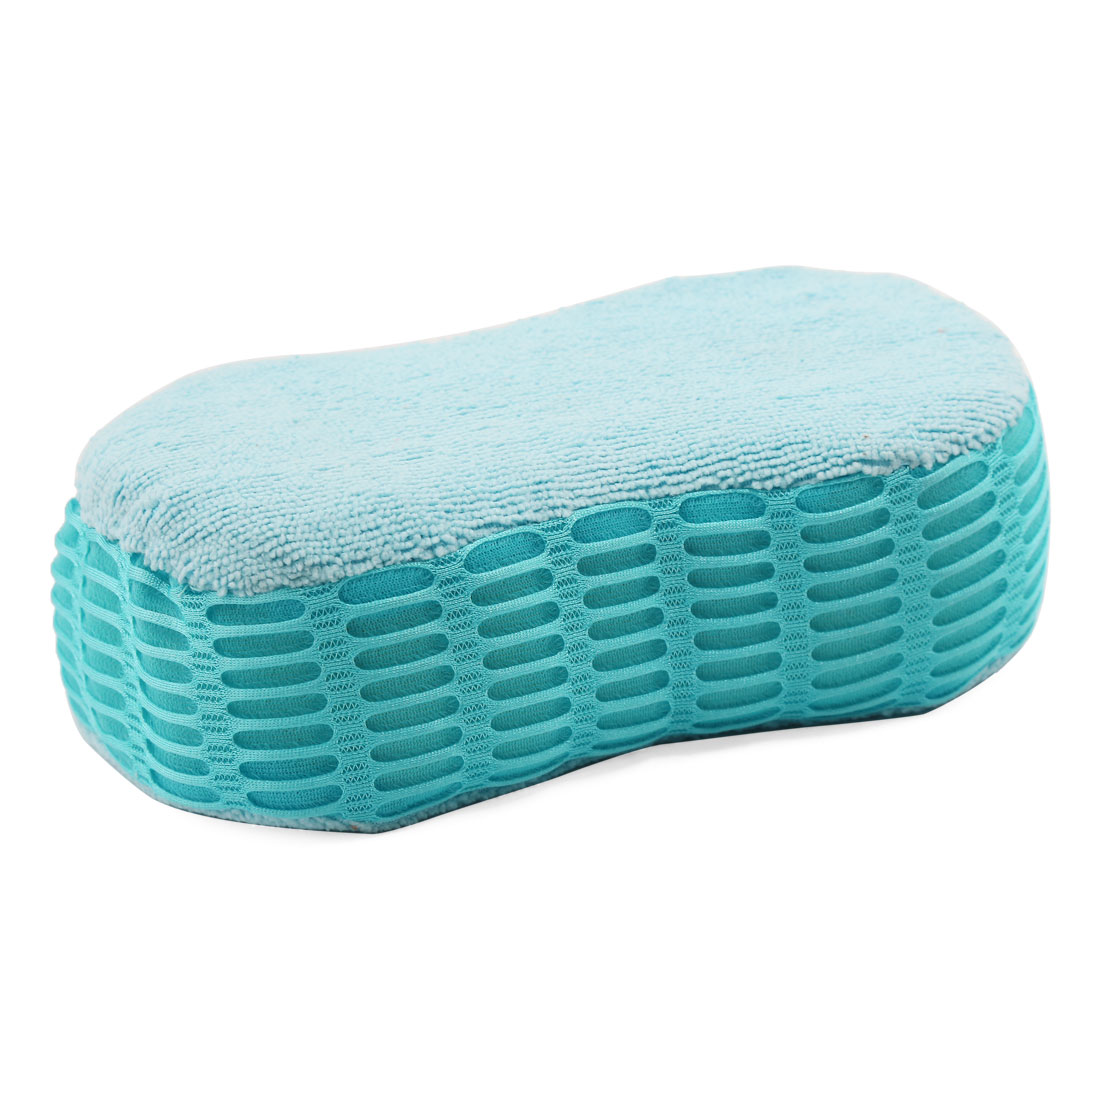 Blue Car Washing Brush Microfiber Sponge Pad Cleaning Tool 21cm x 11cm x 7cm